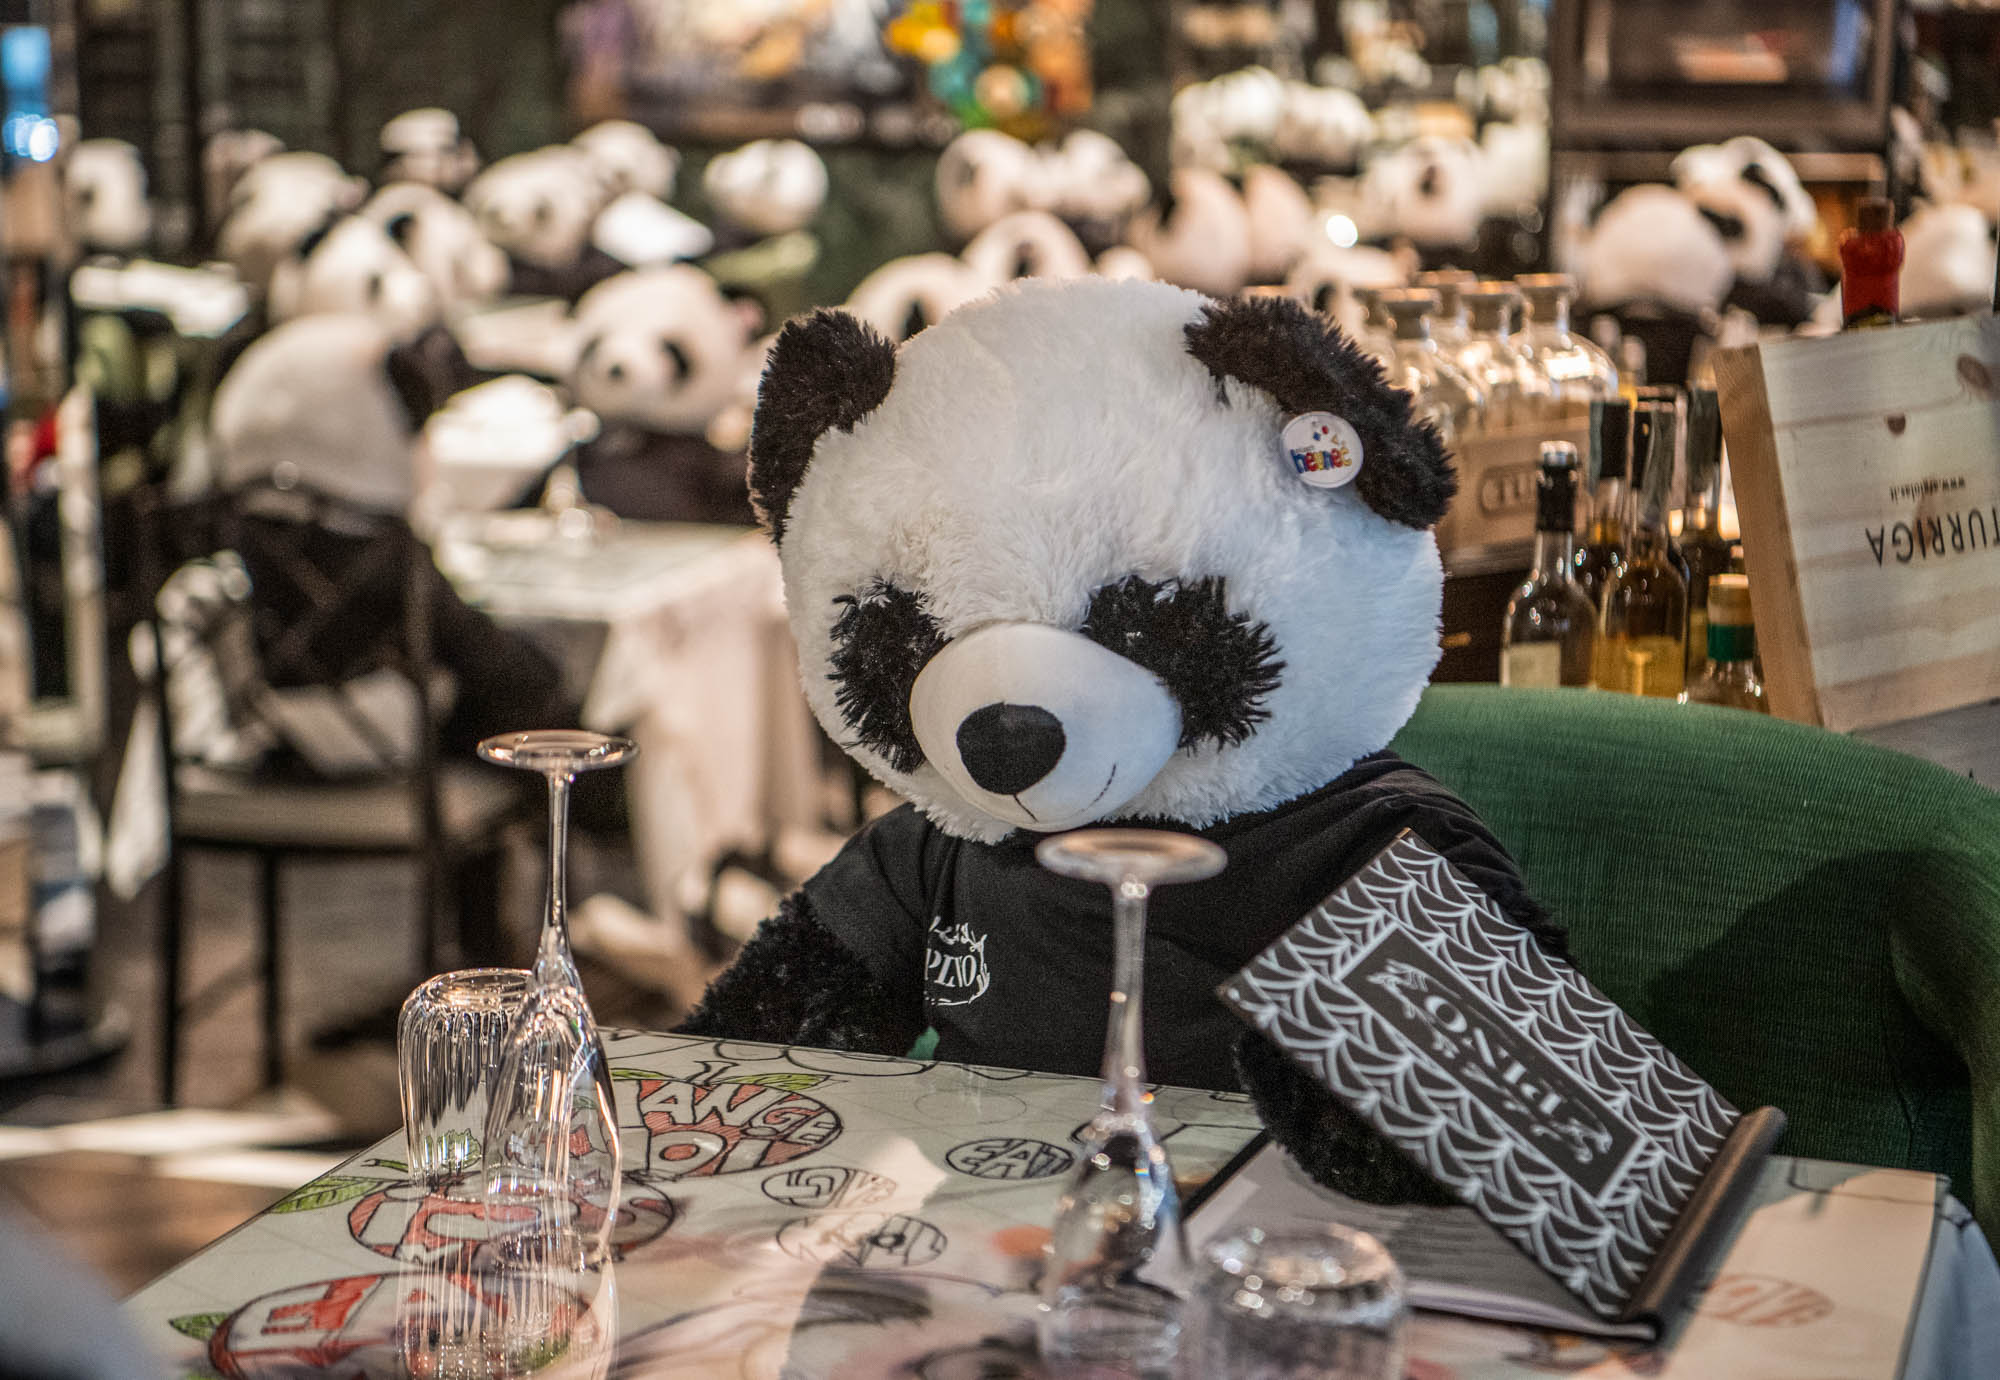 German Restaurant Protests Shutdown with Giant Stuffed Pandas